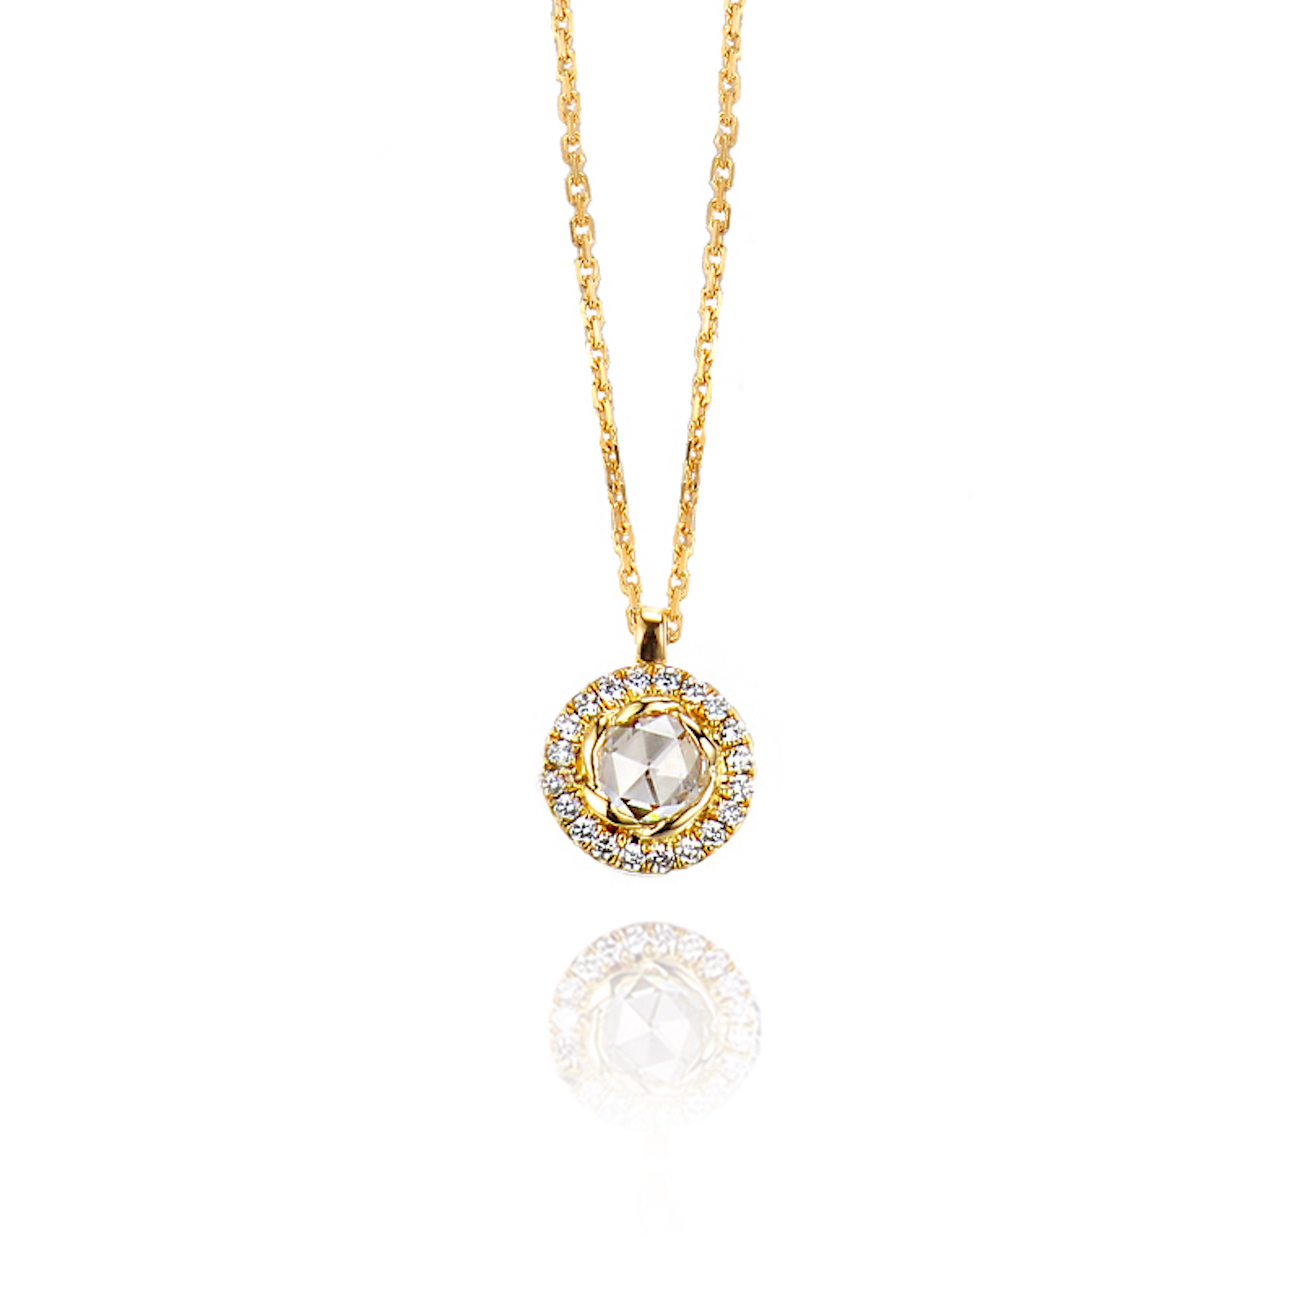 63-Signature-Twist-Bezel-Rose-Cut-Diamond-Drop-Gold-Pendant-Necklace_ALGP-01-B